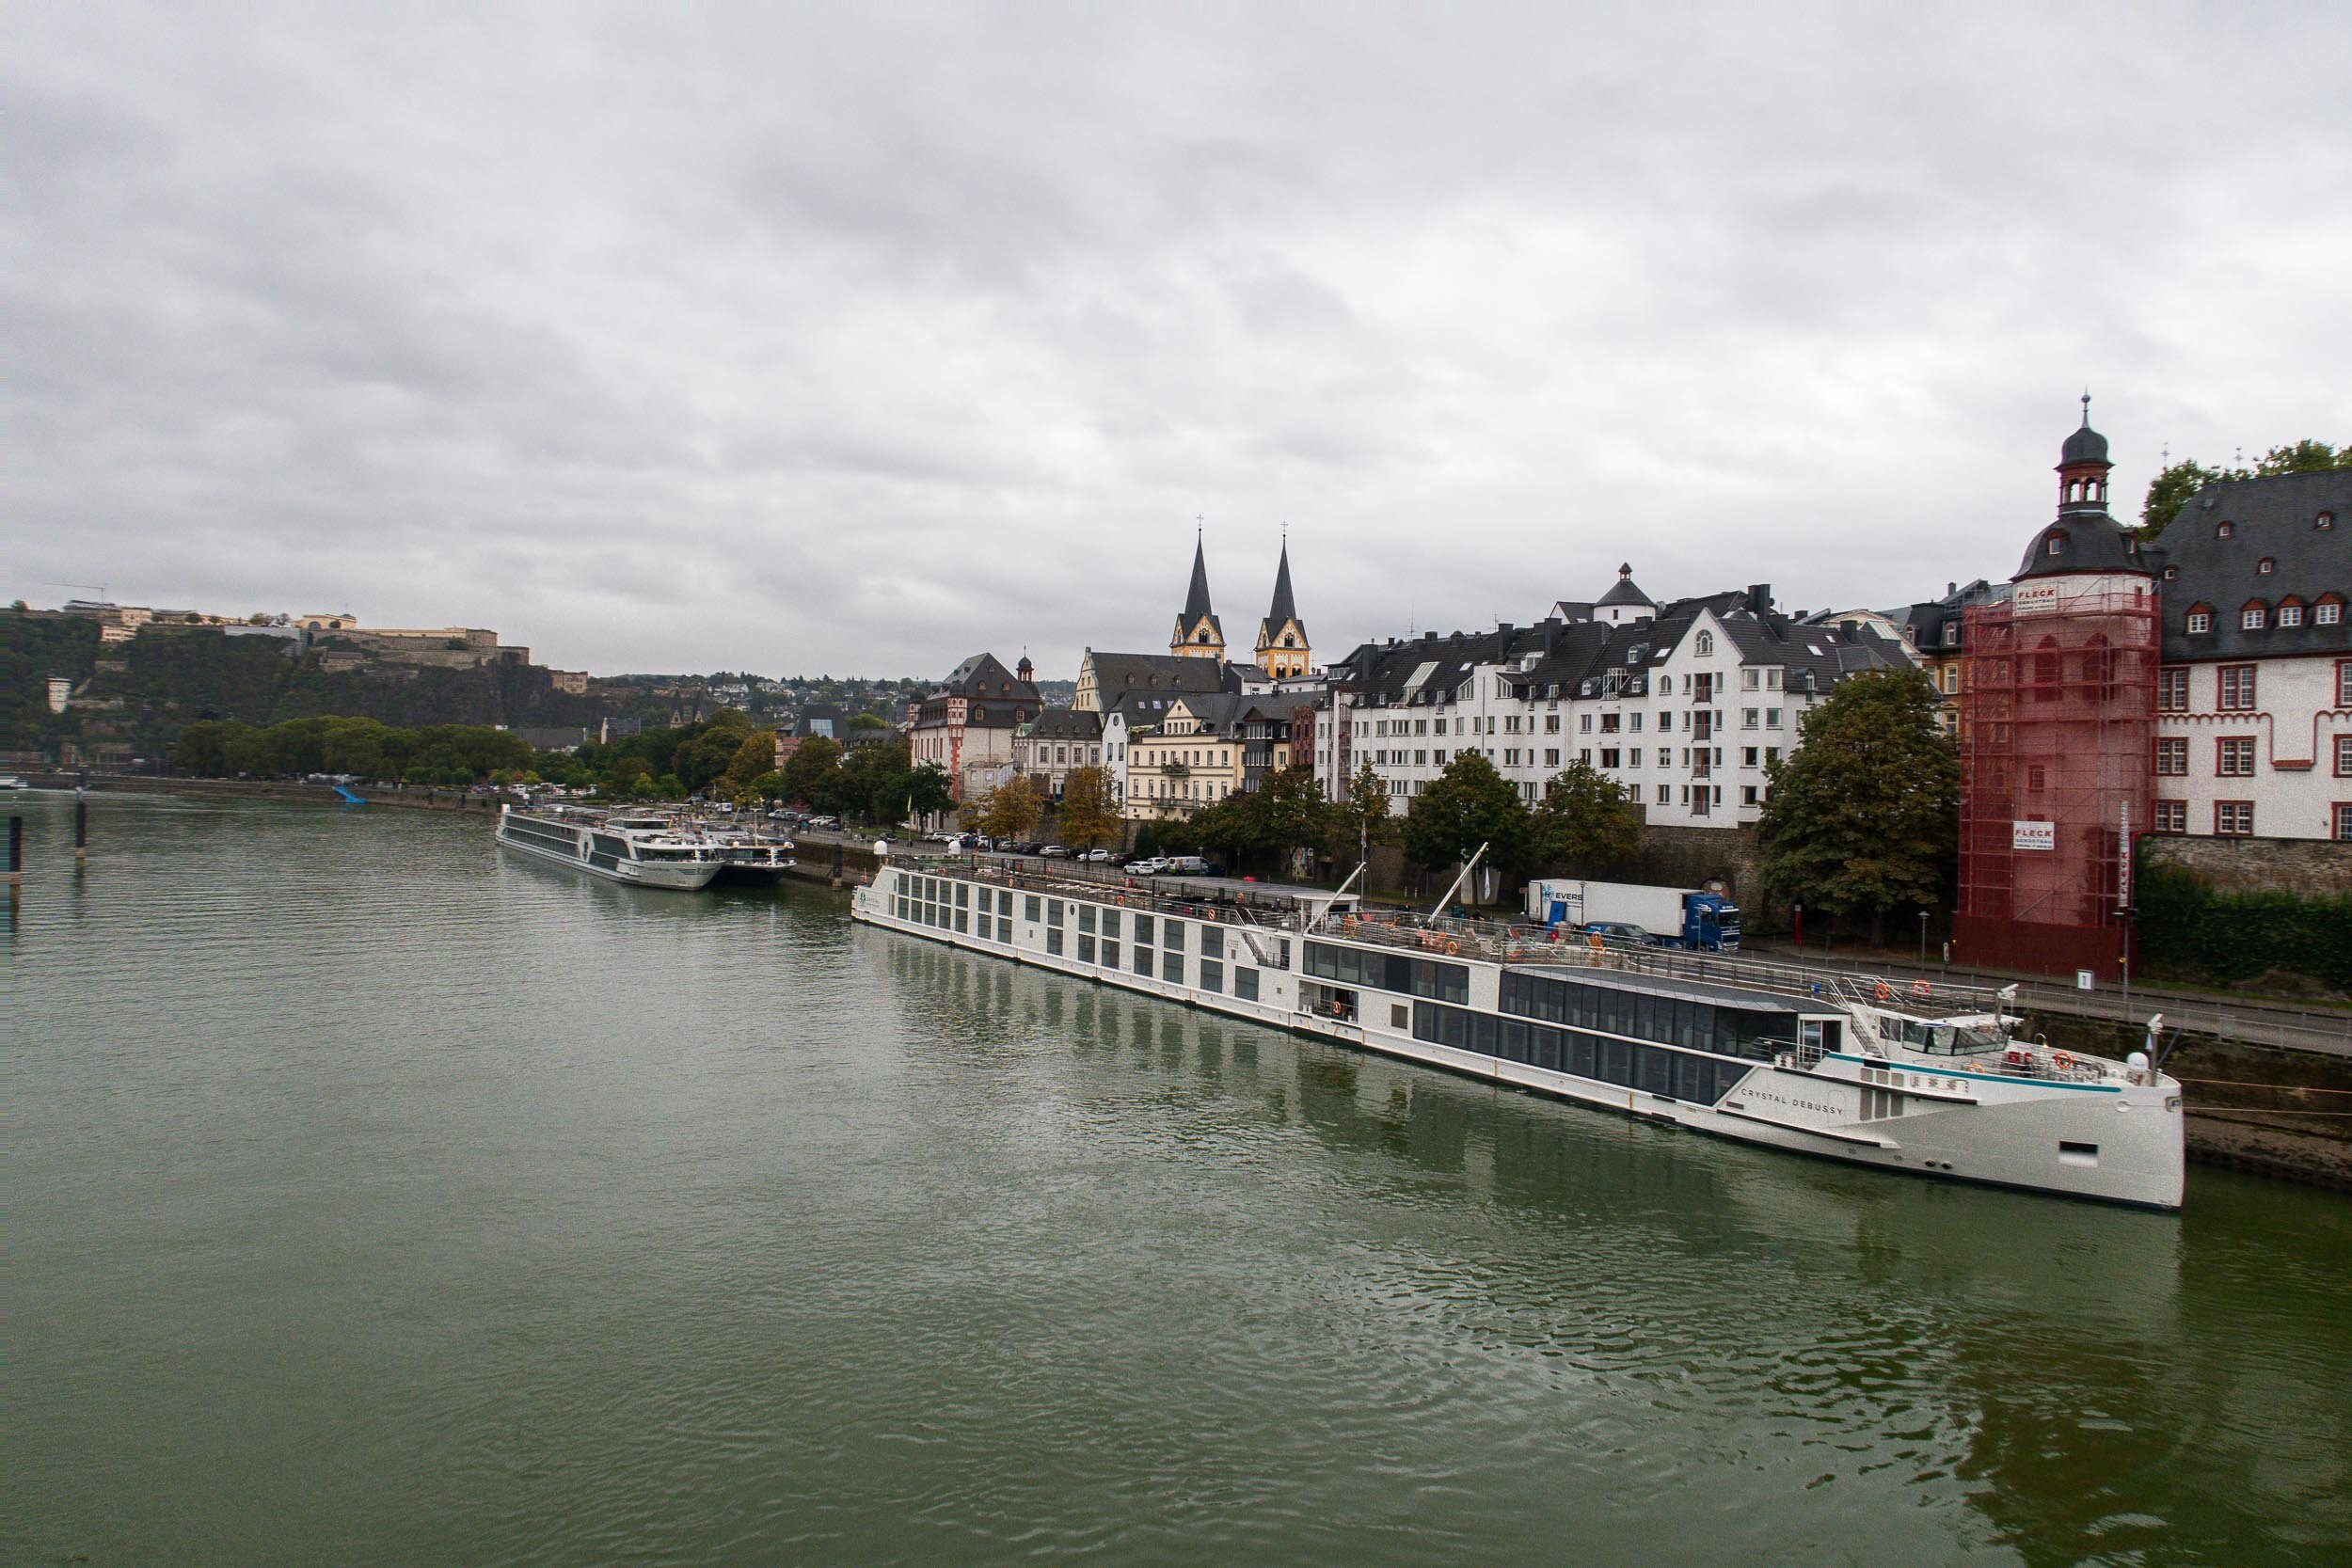 EVERYTHING you need to know about Koblenz, Germany. Where to visit, eat, and what to do.